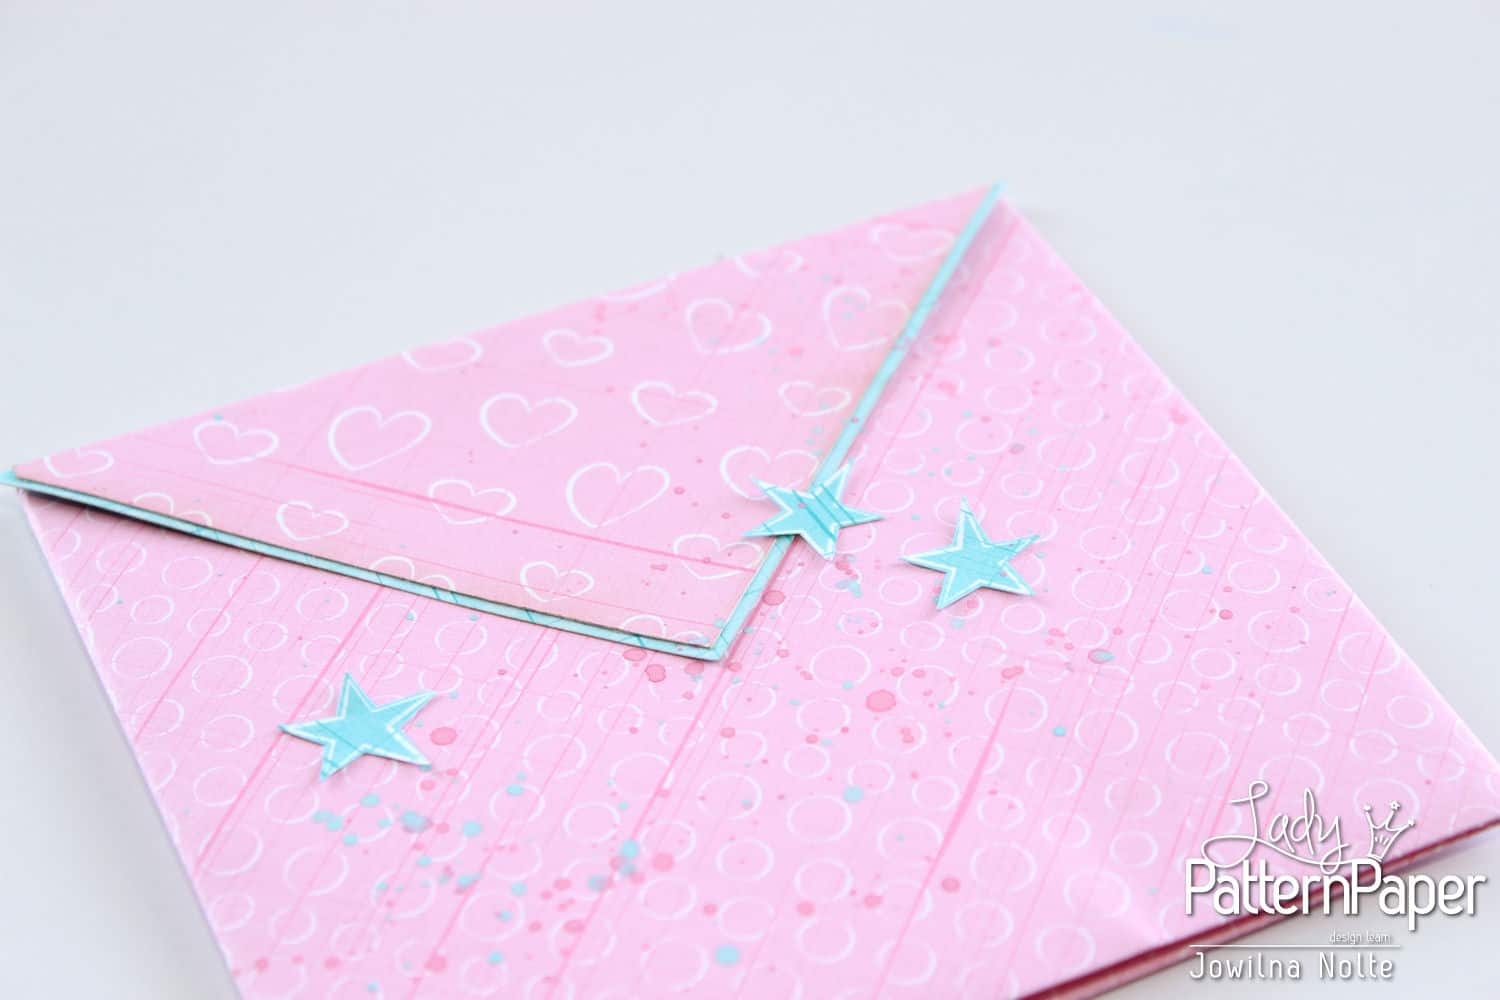 Pocket Envelopes - Step 7